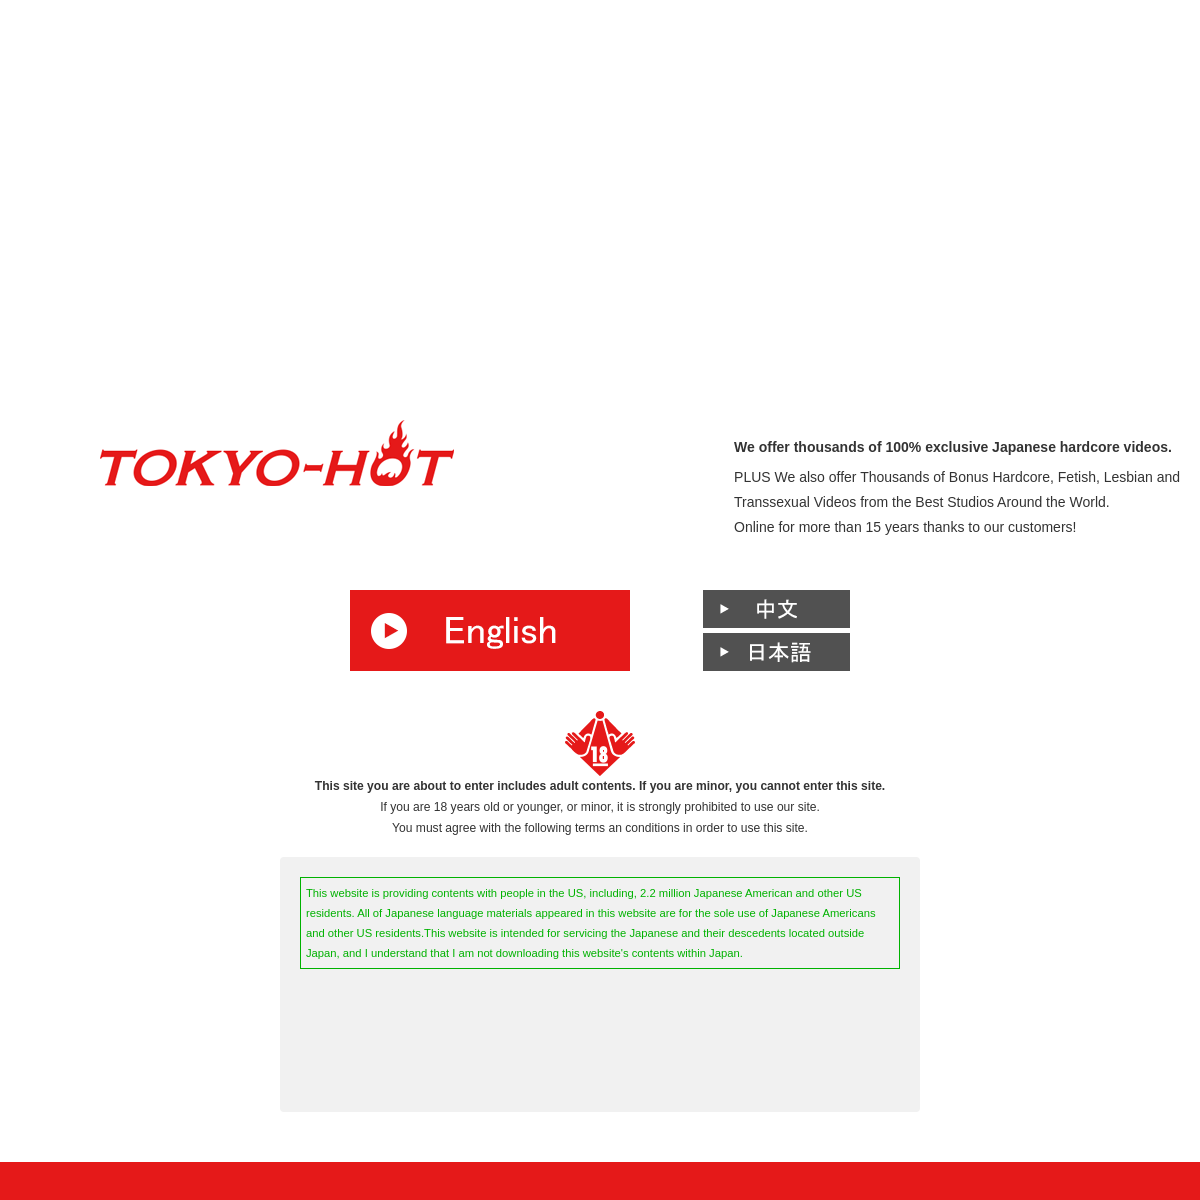 A complete backup of www.www.tokyo-hot.com